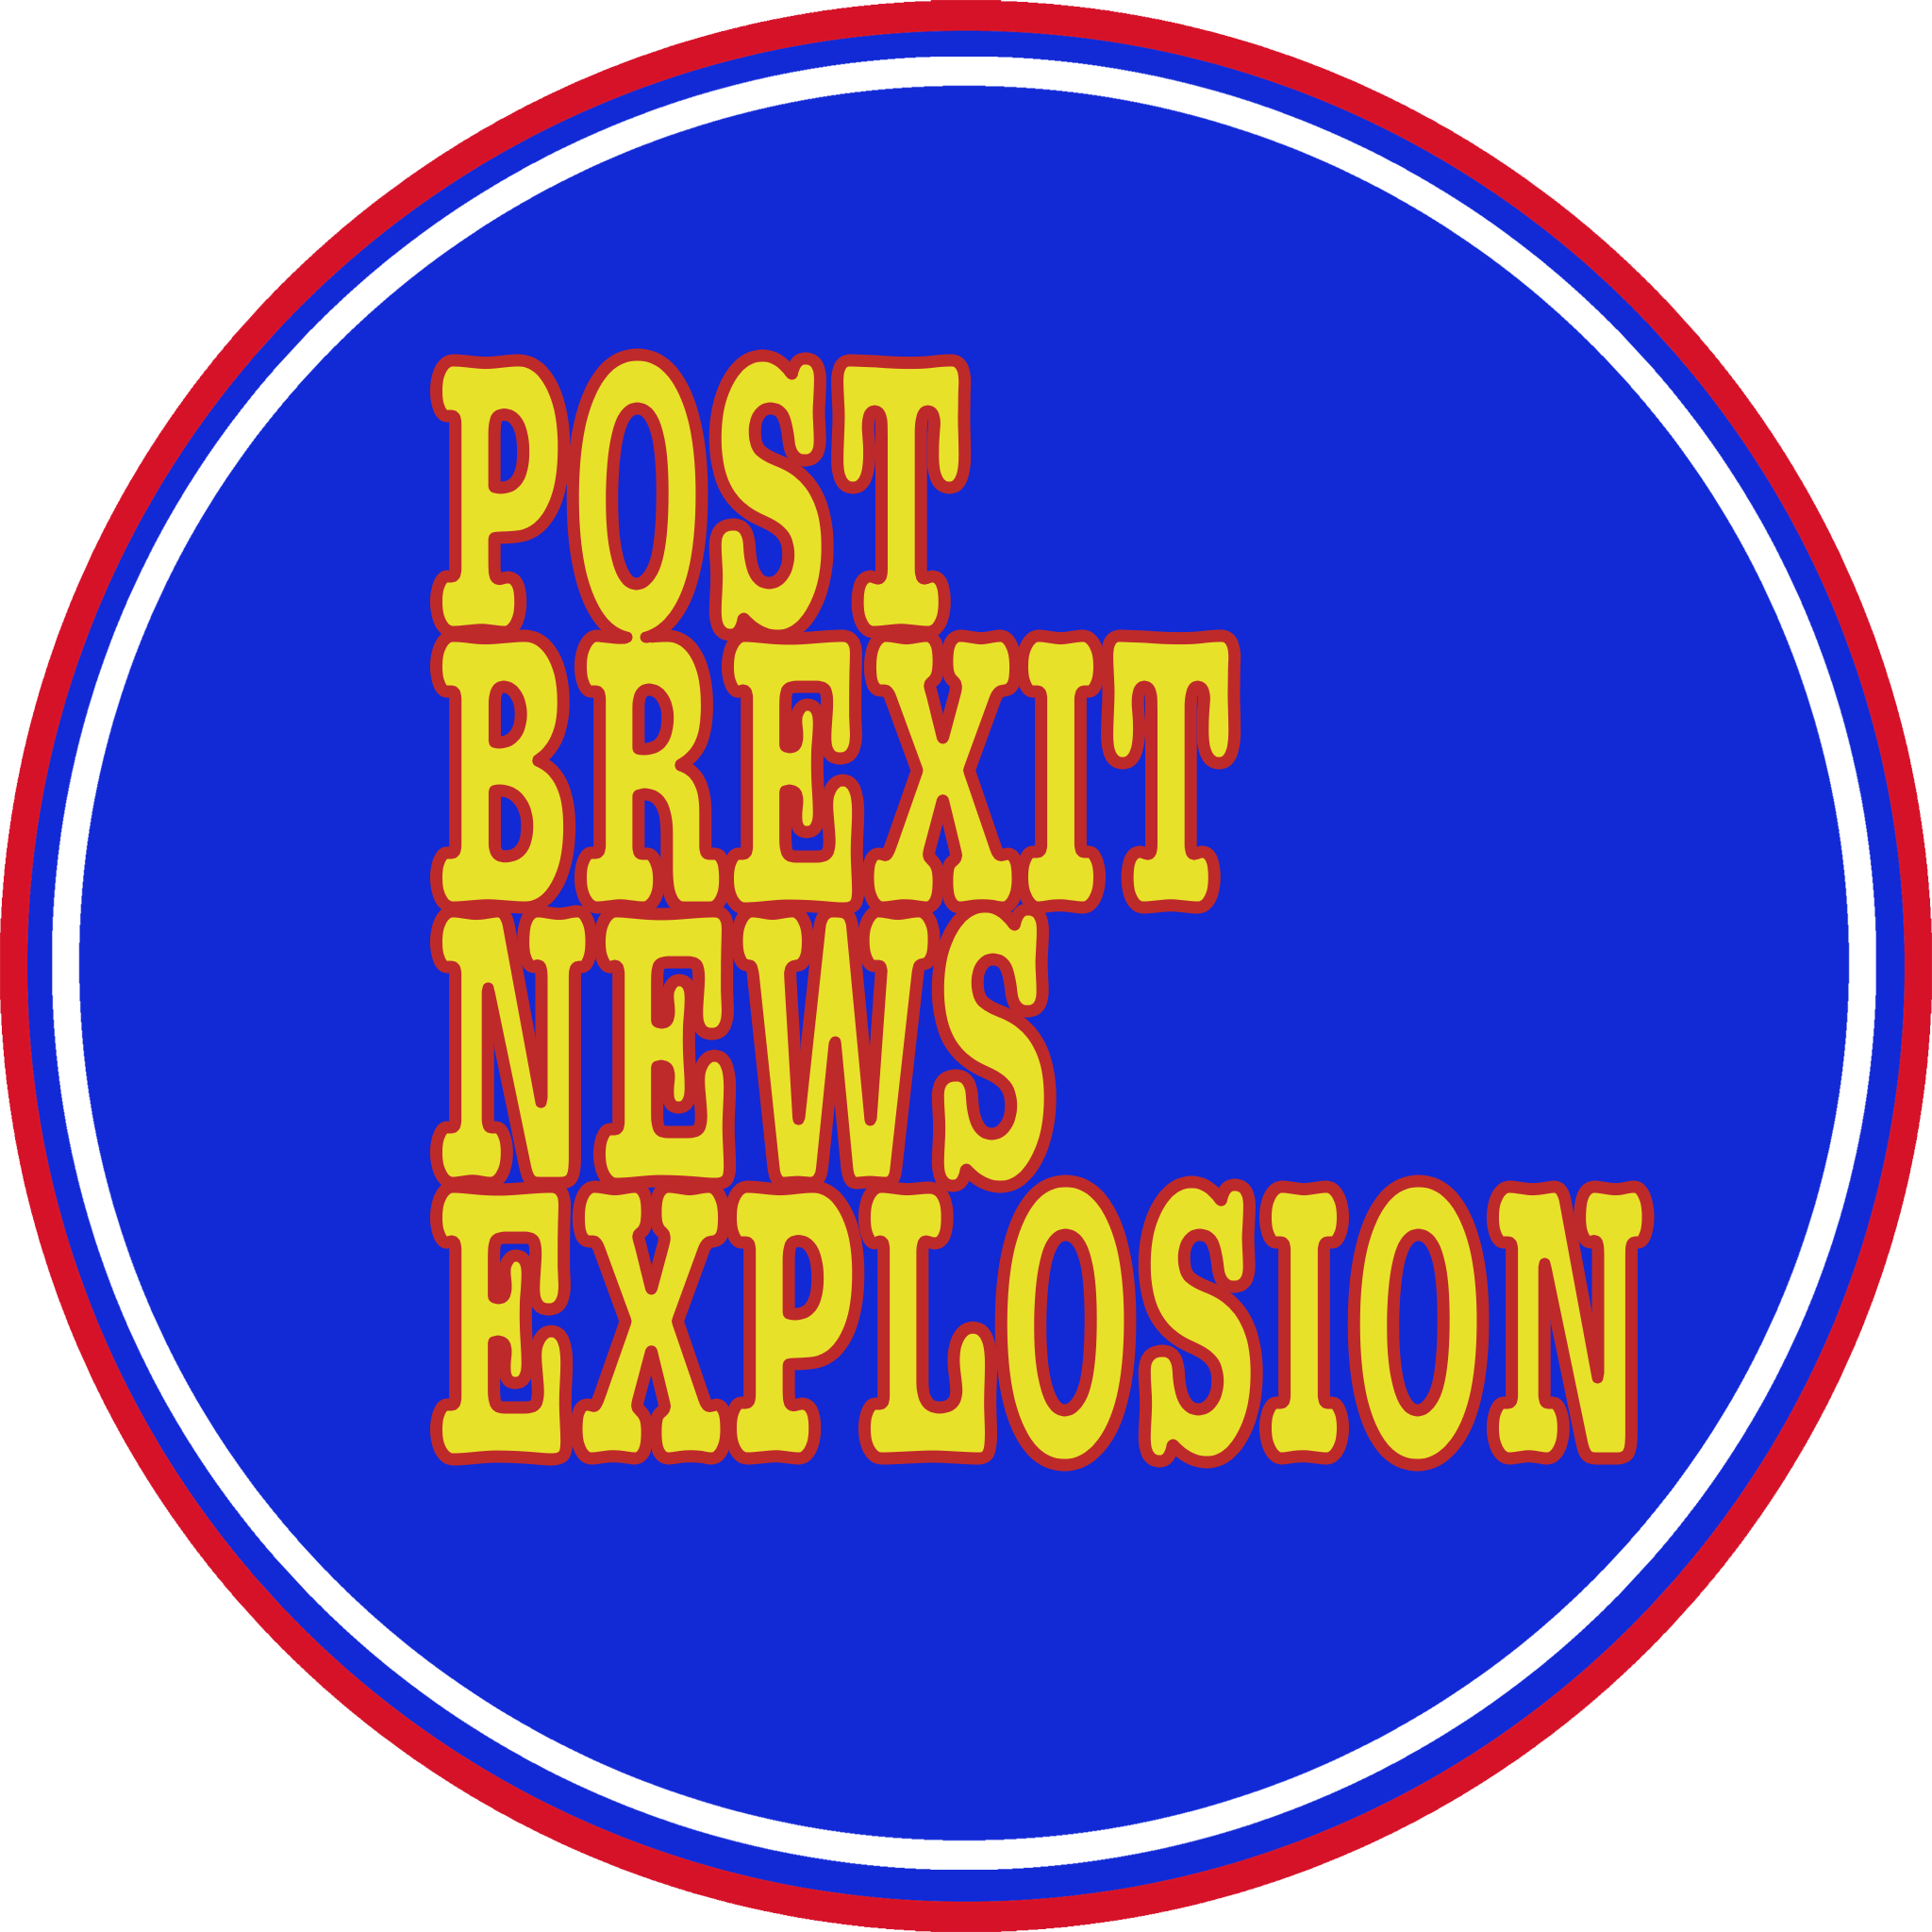 Logo Post Brexit News Explosion